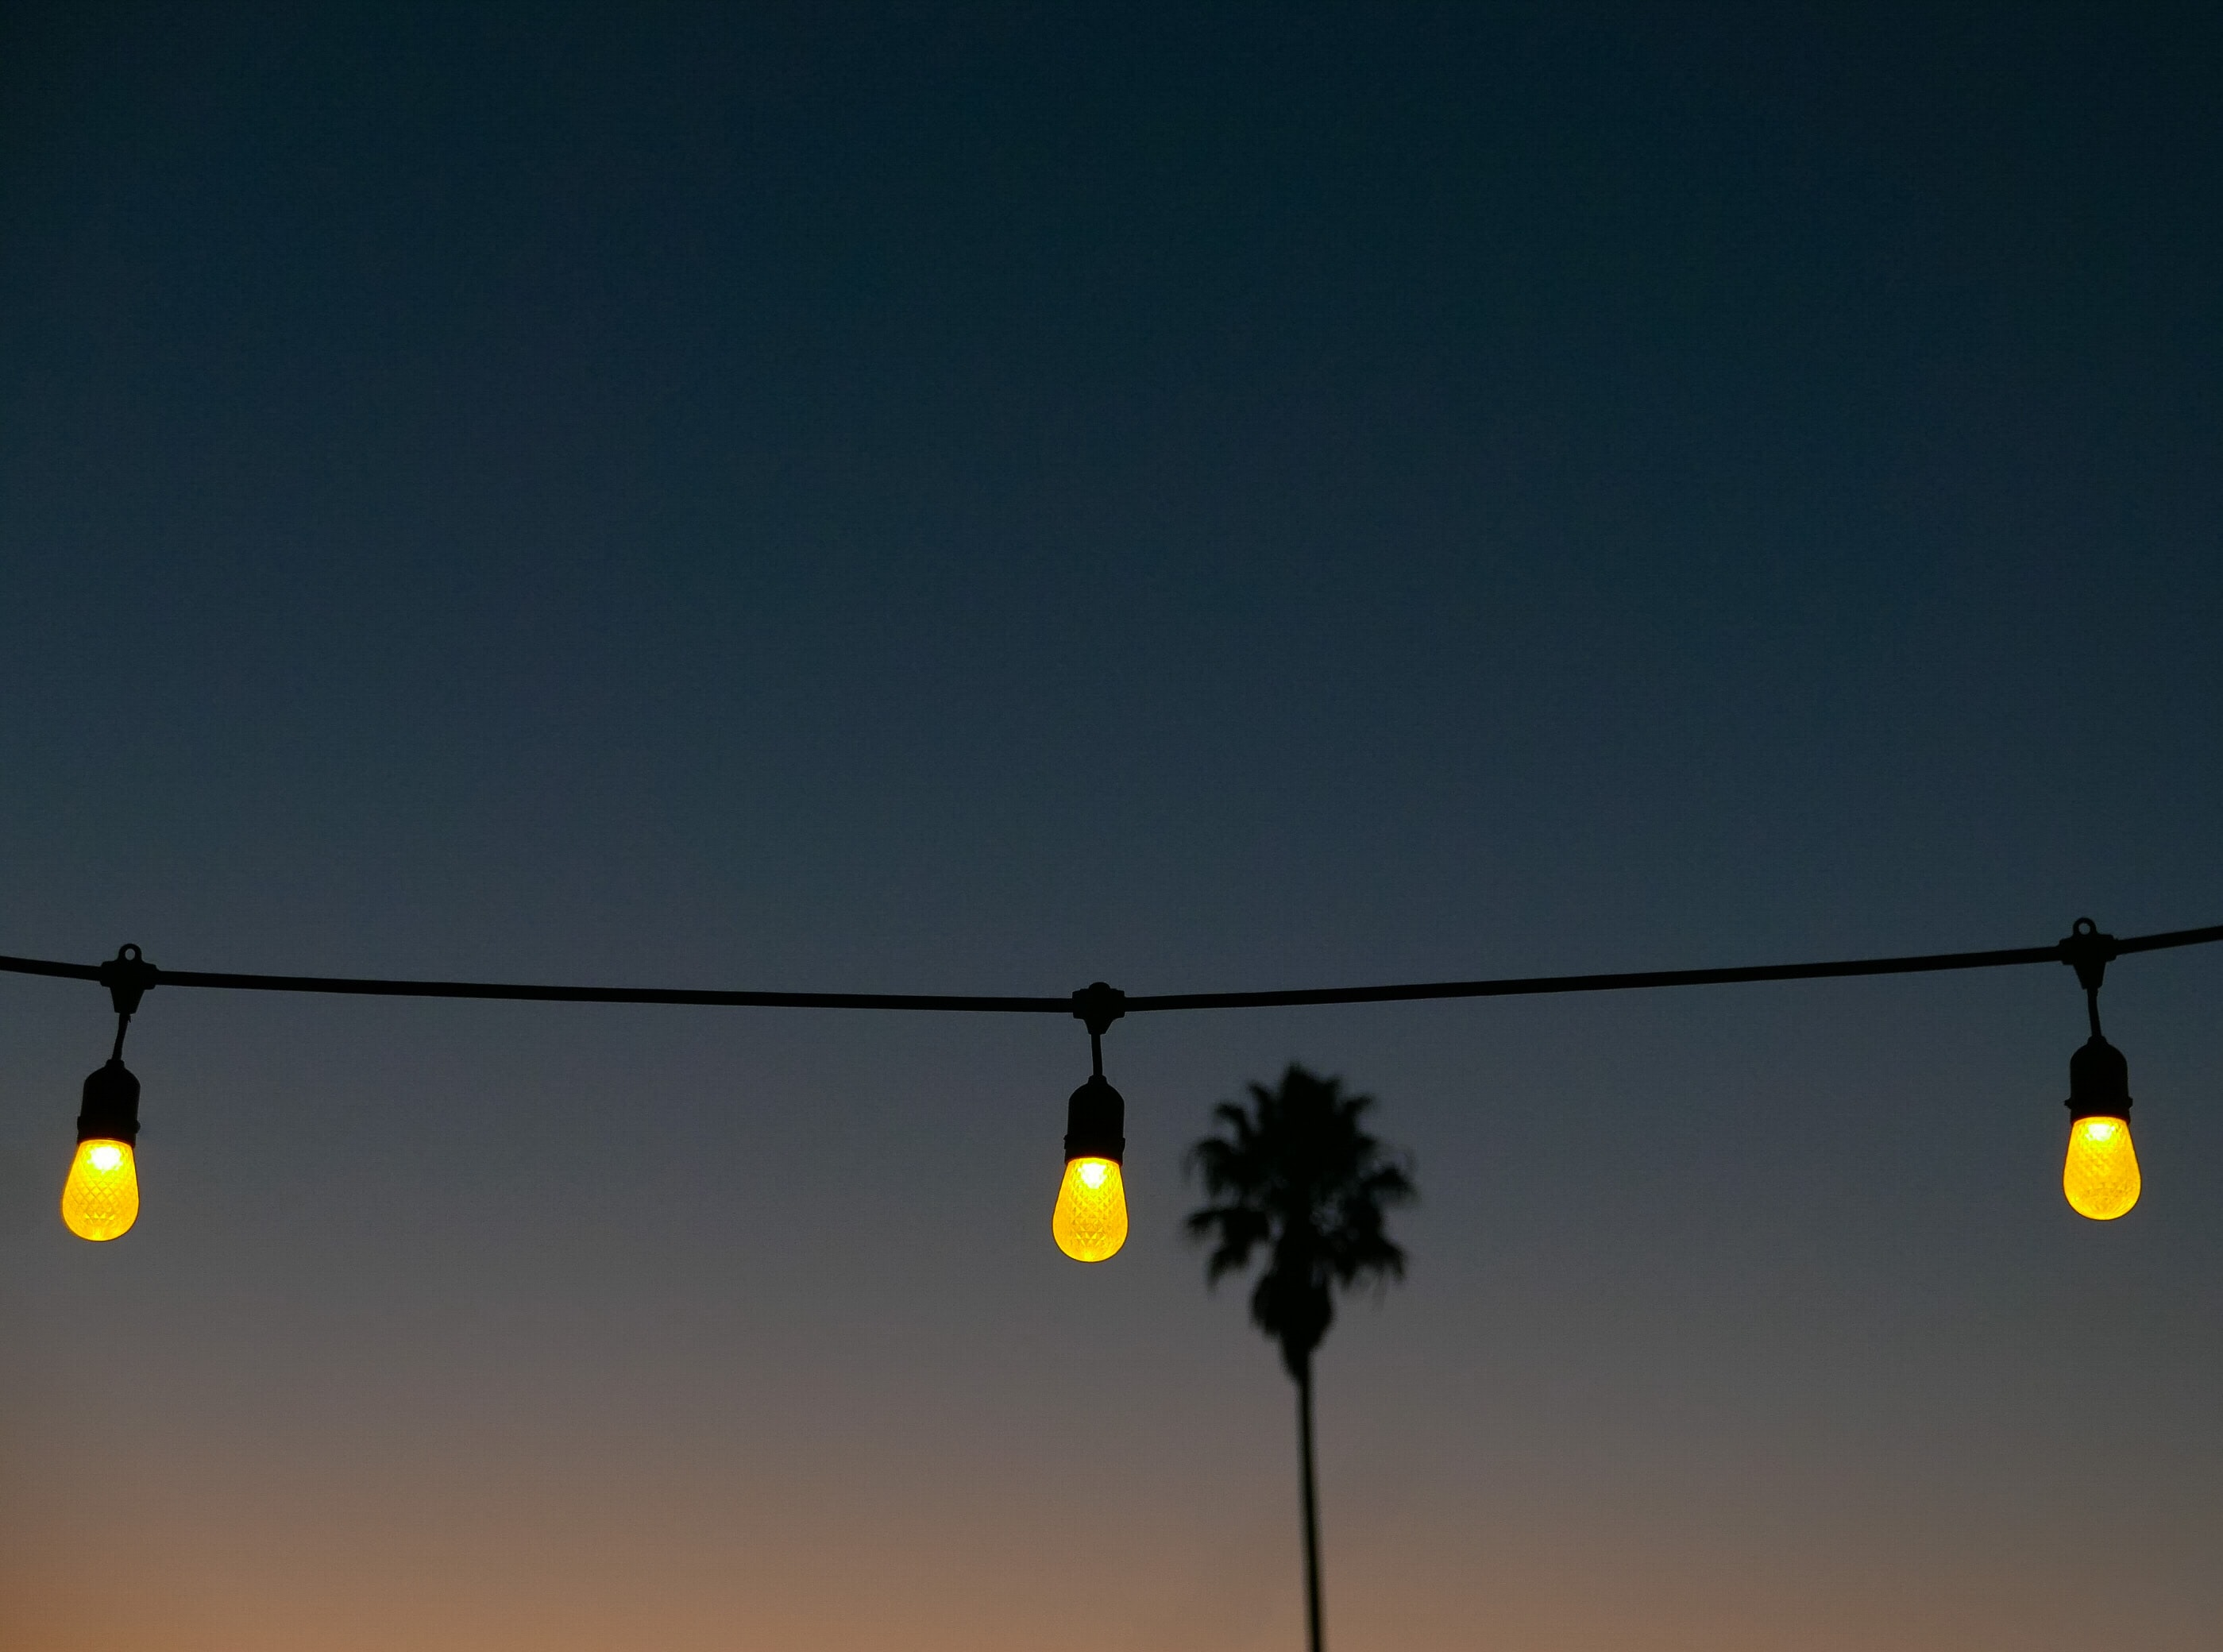 yellow string lights at nigh time